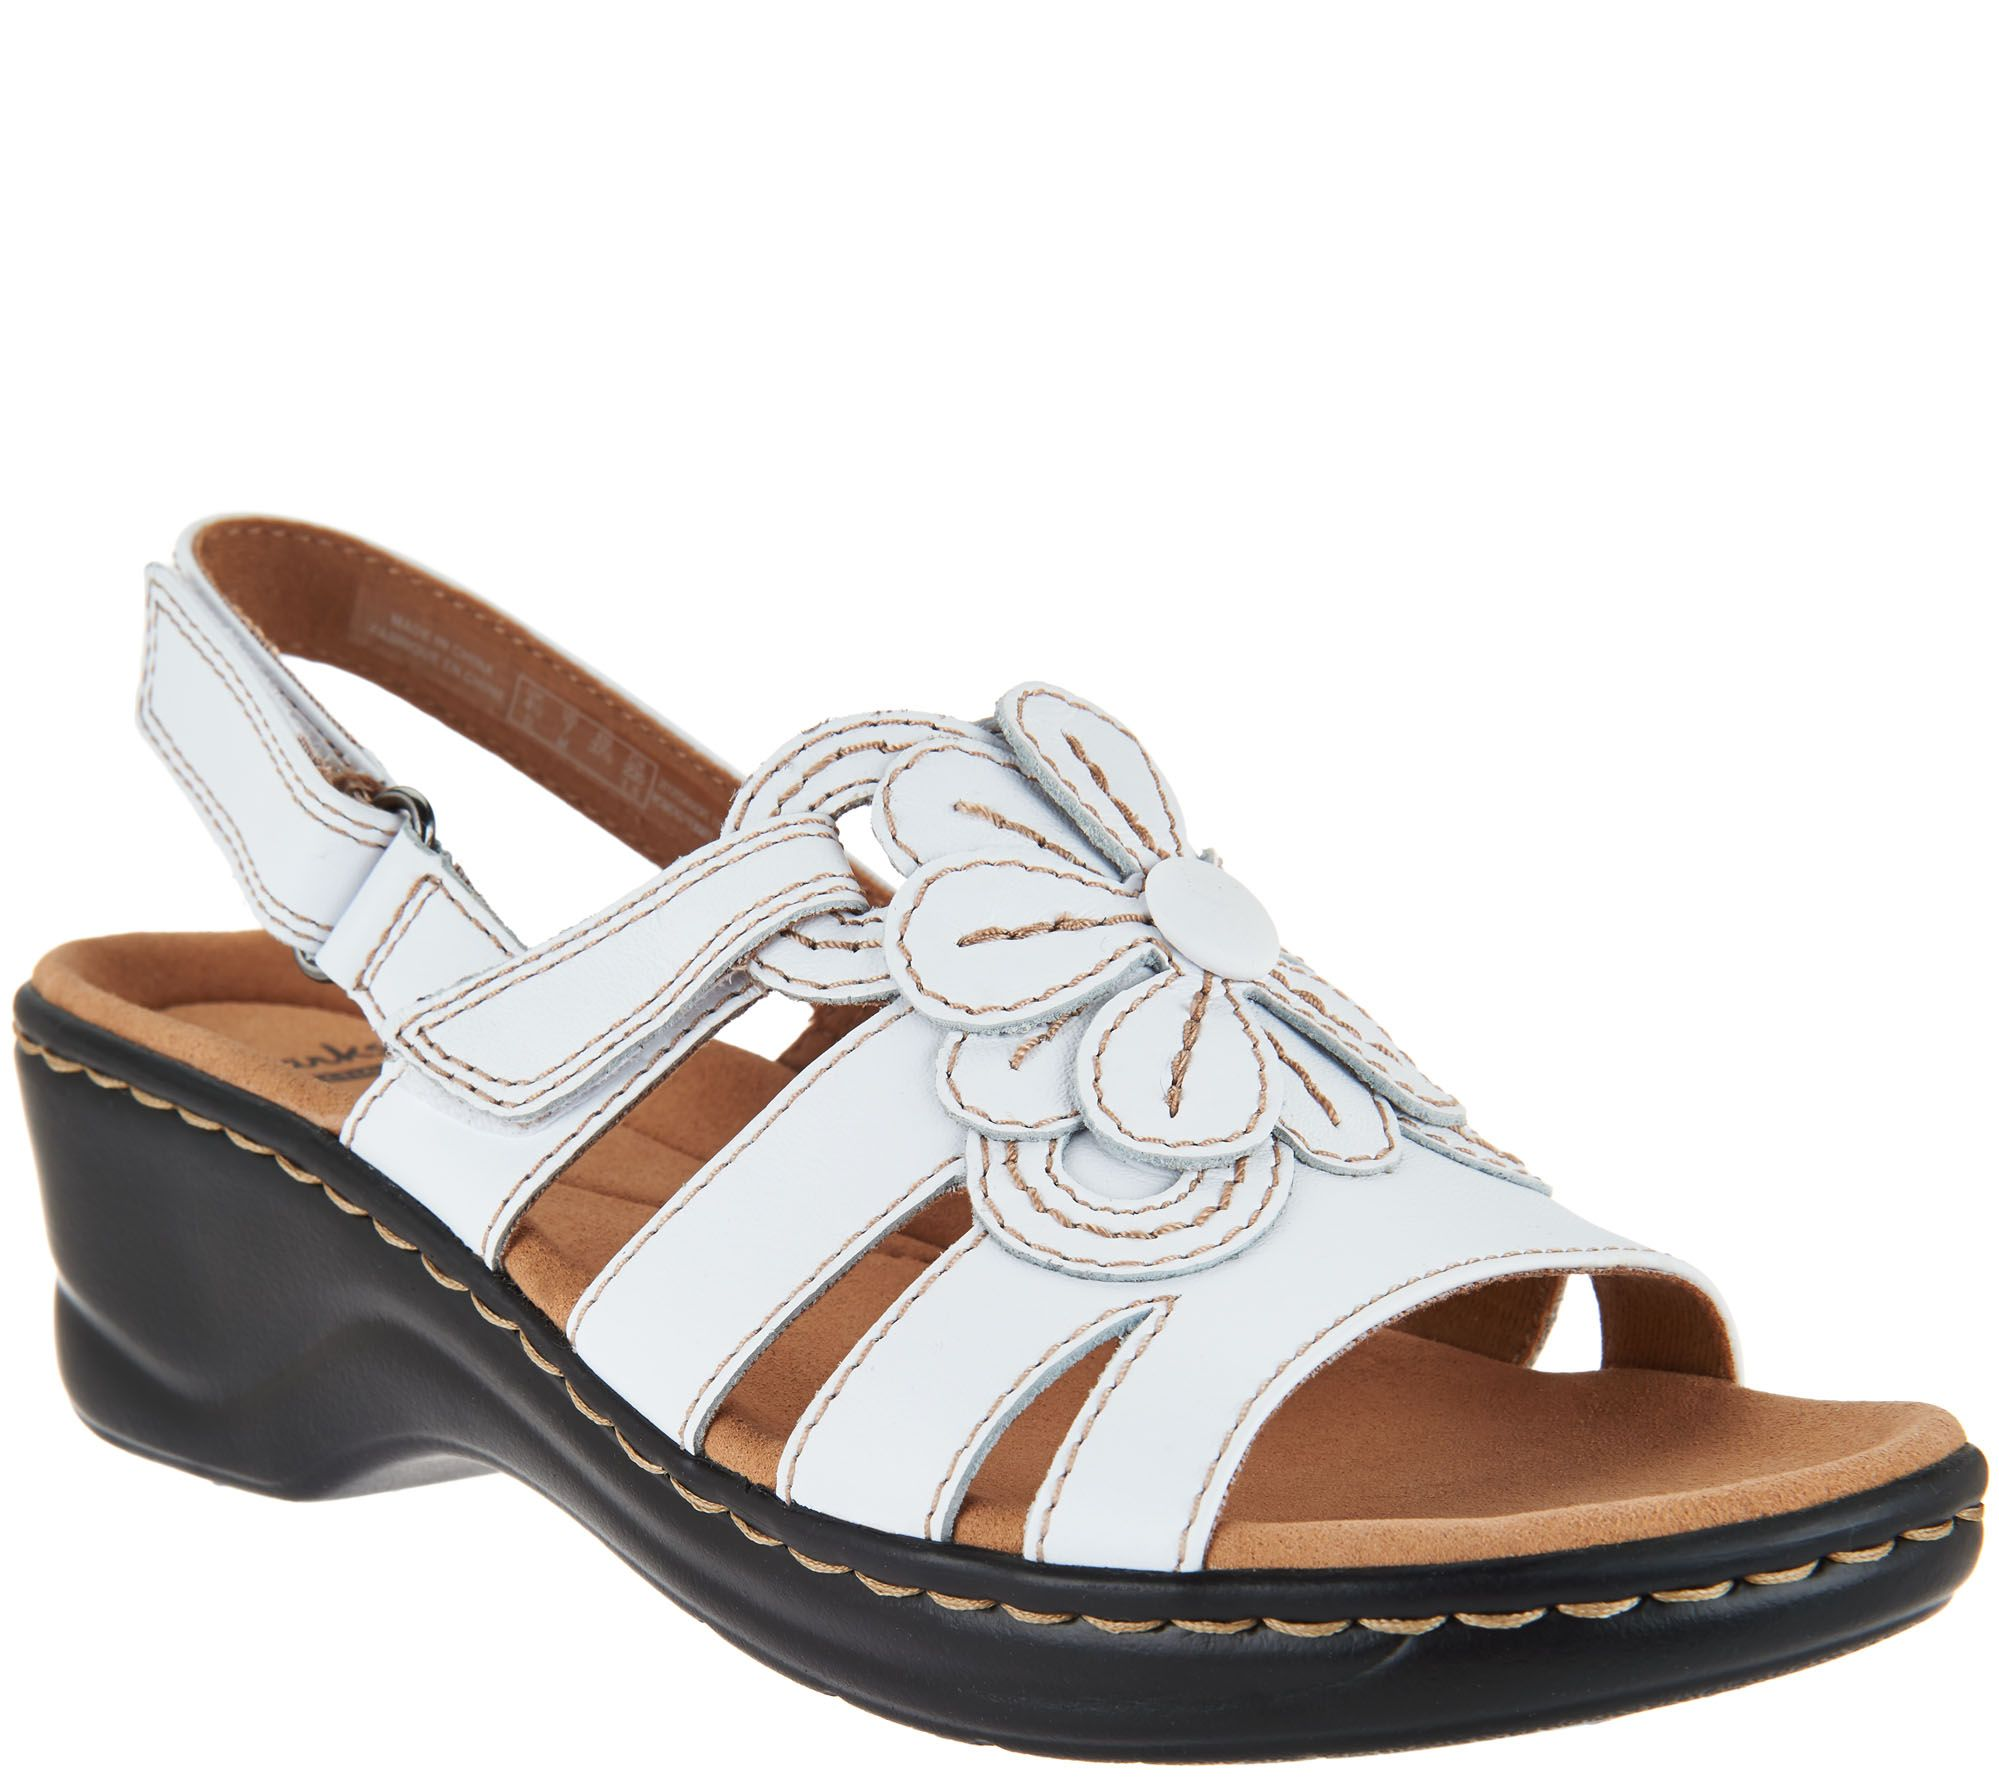 Clarks Leather Lightweight Sandals Lexi Venice Page 1